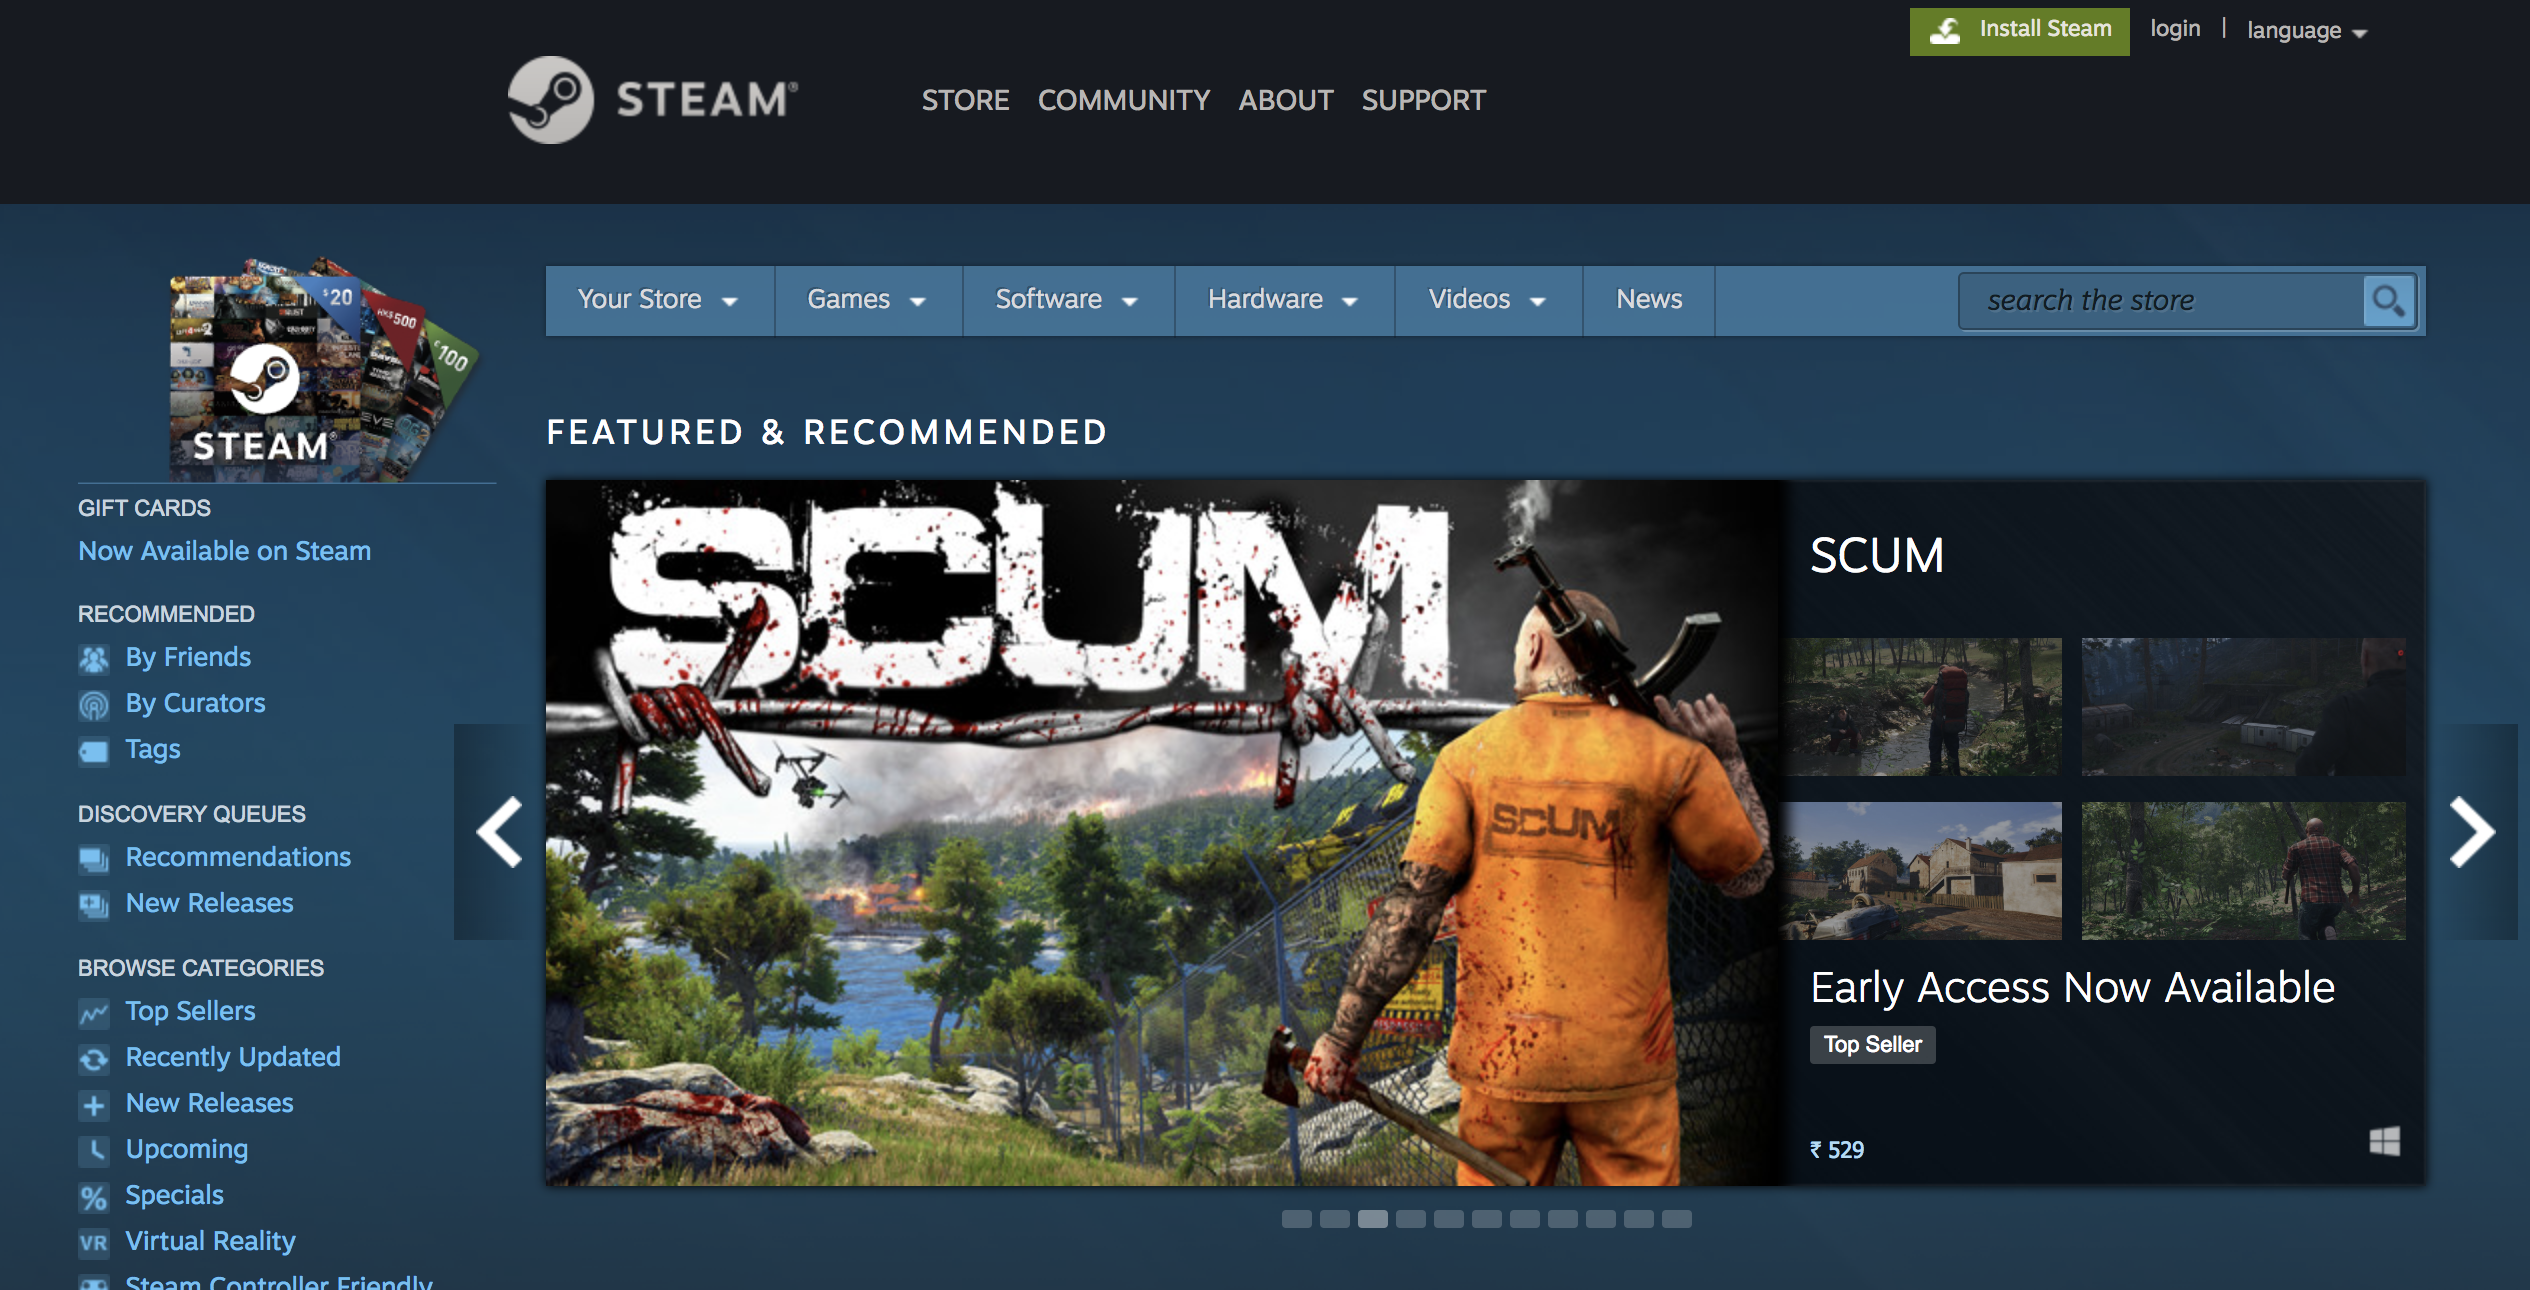 Steam Return Policy 2018 How To Get Refund For A Game